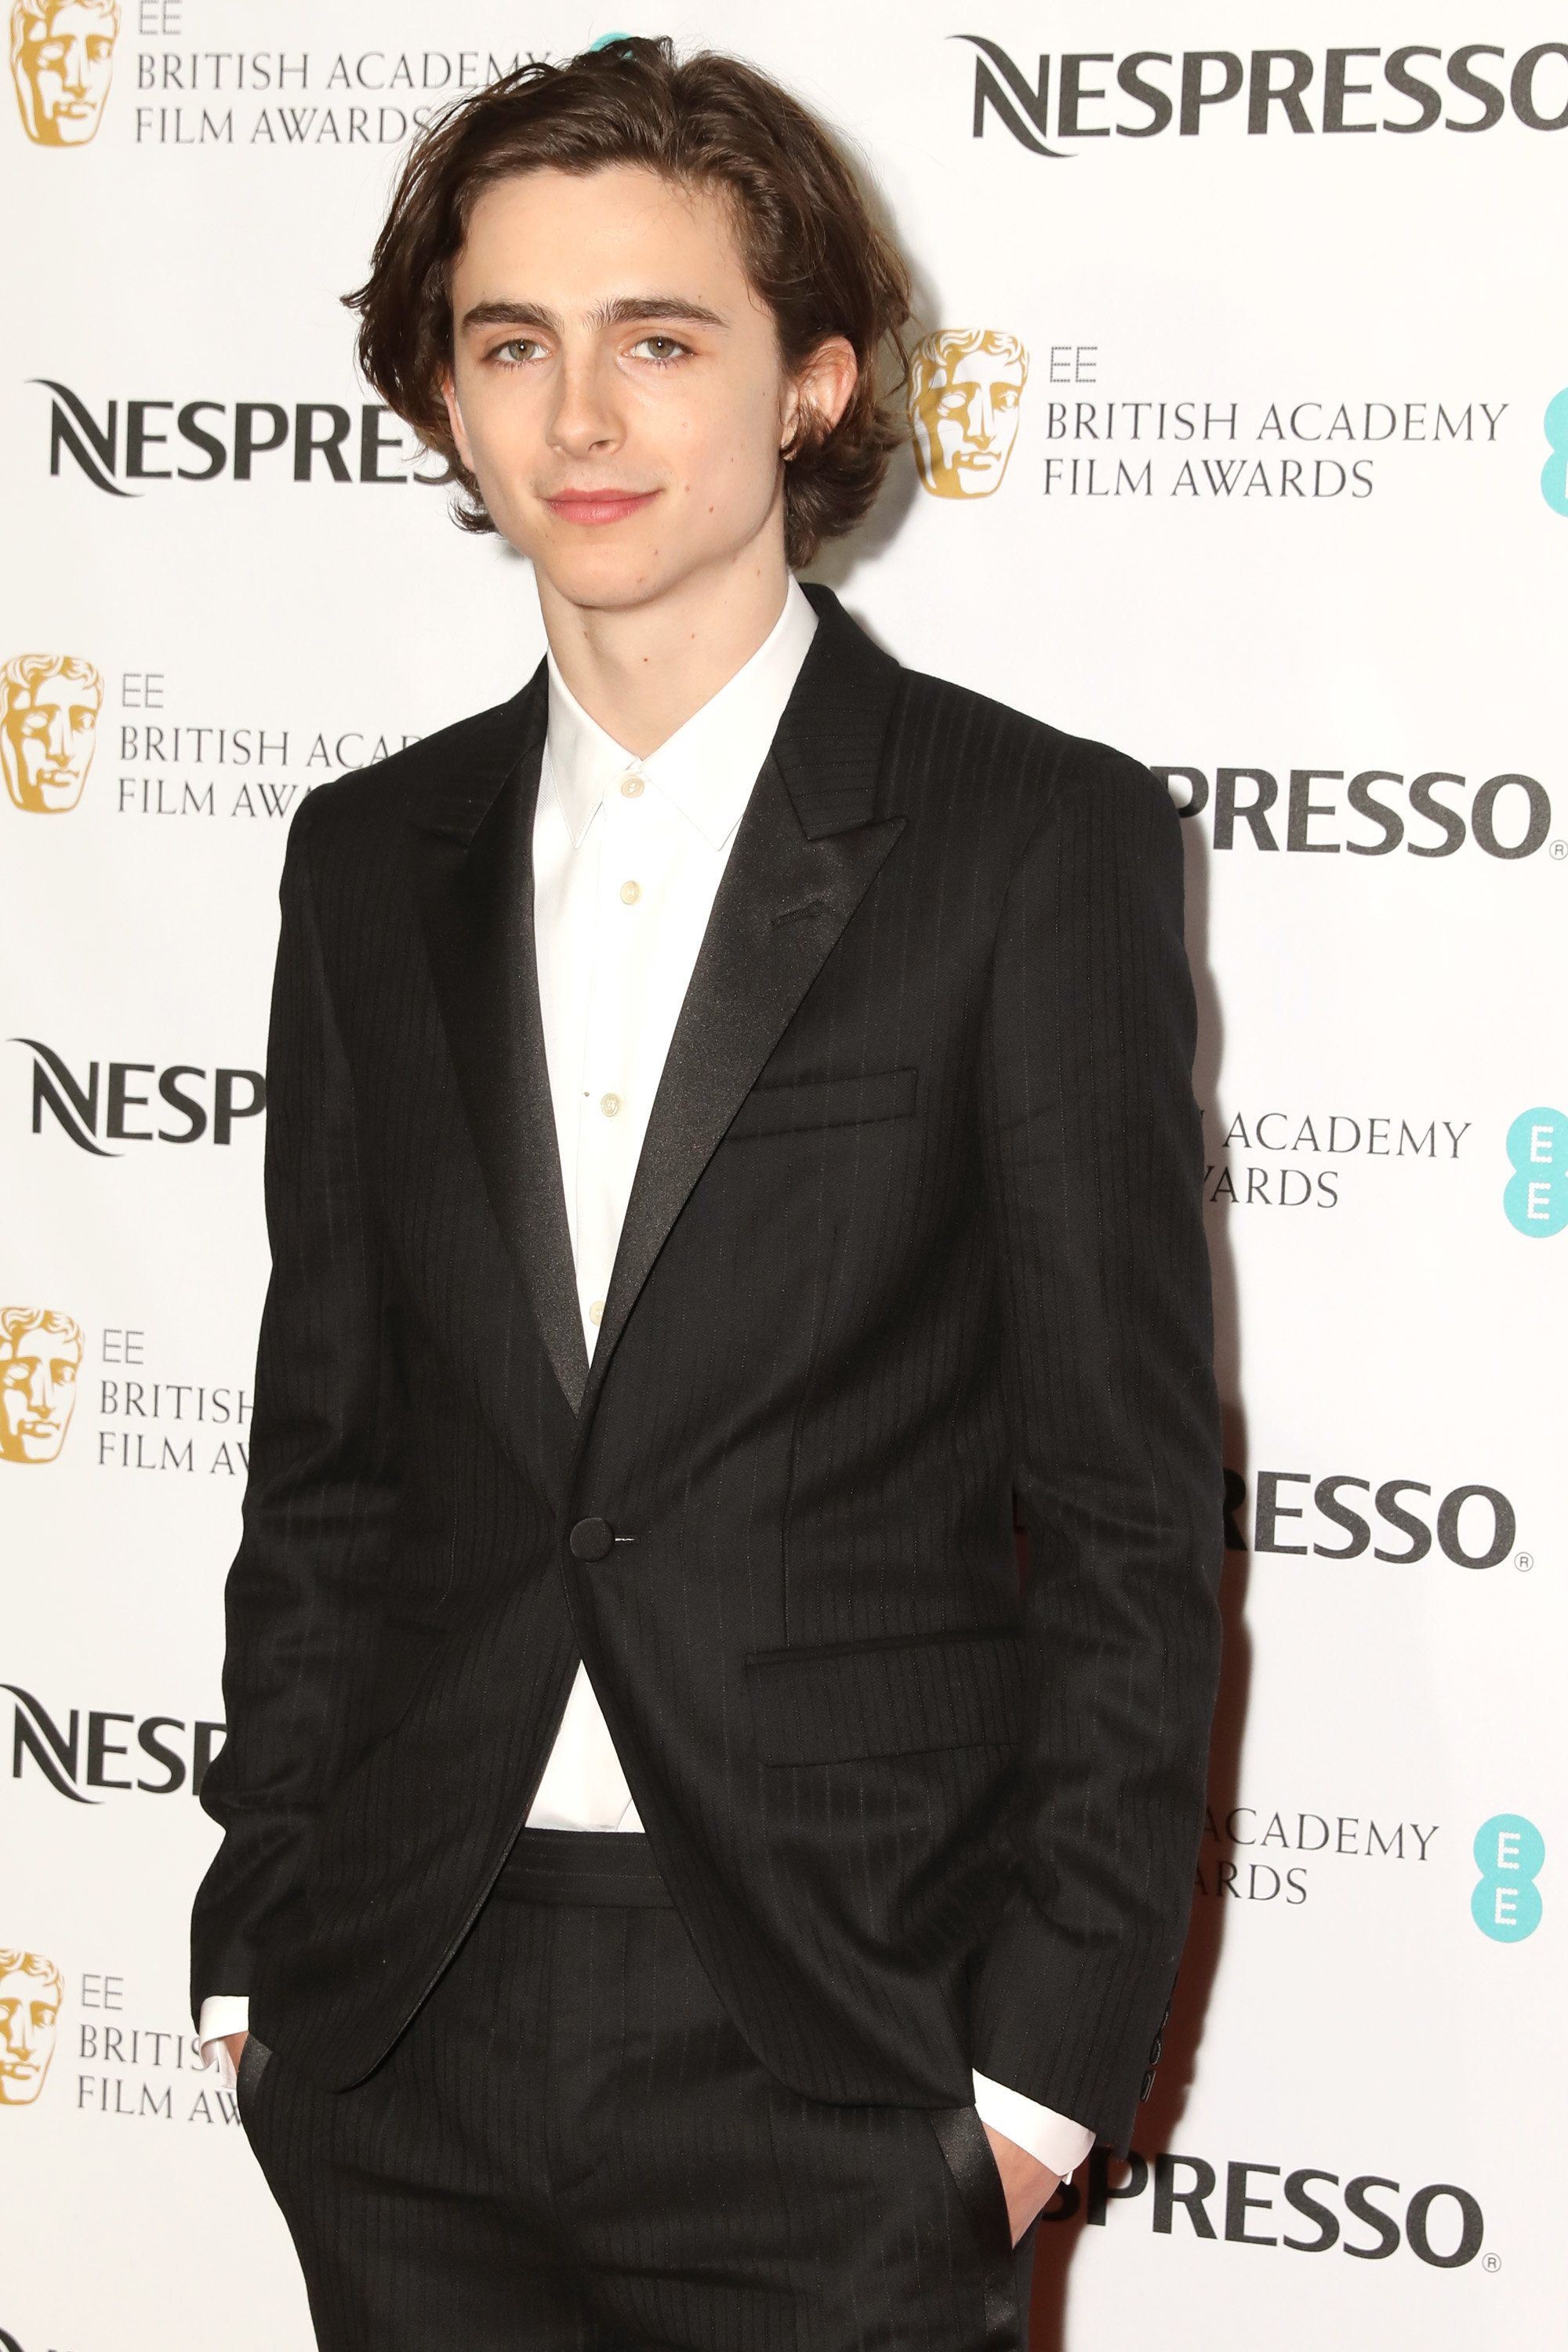 Timothée Chalamet Discusses How Lack Of 'Self-Identity' Affects His Mental